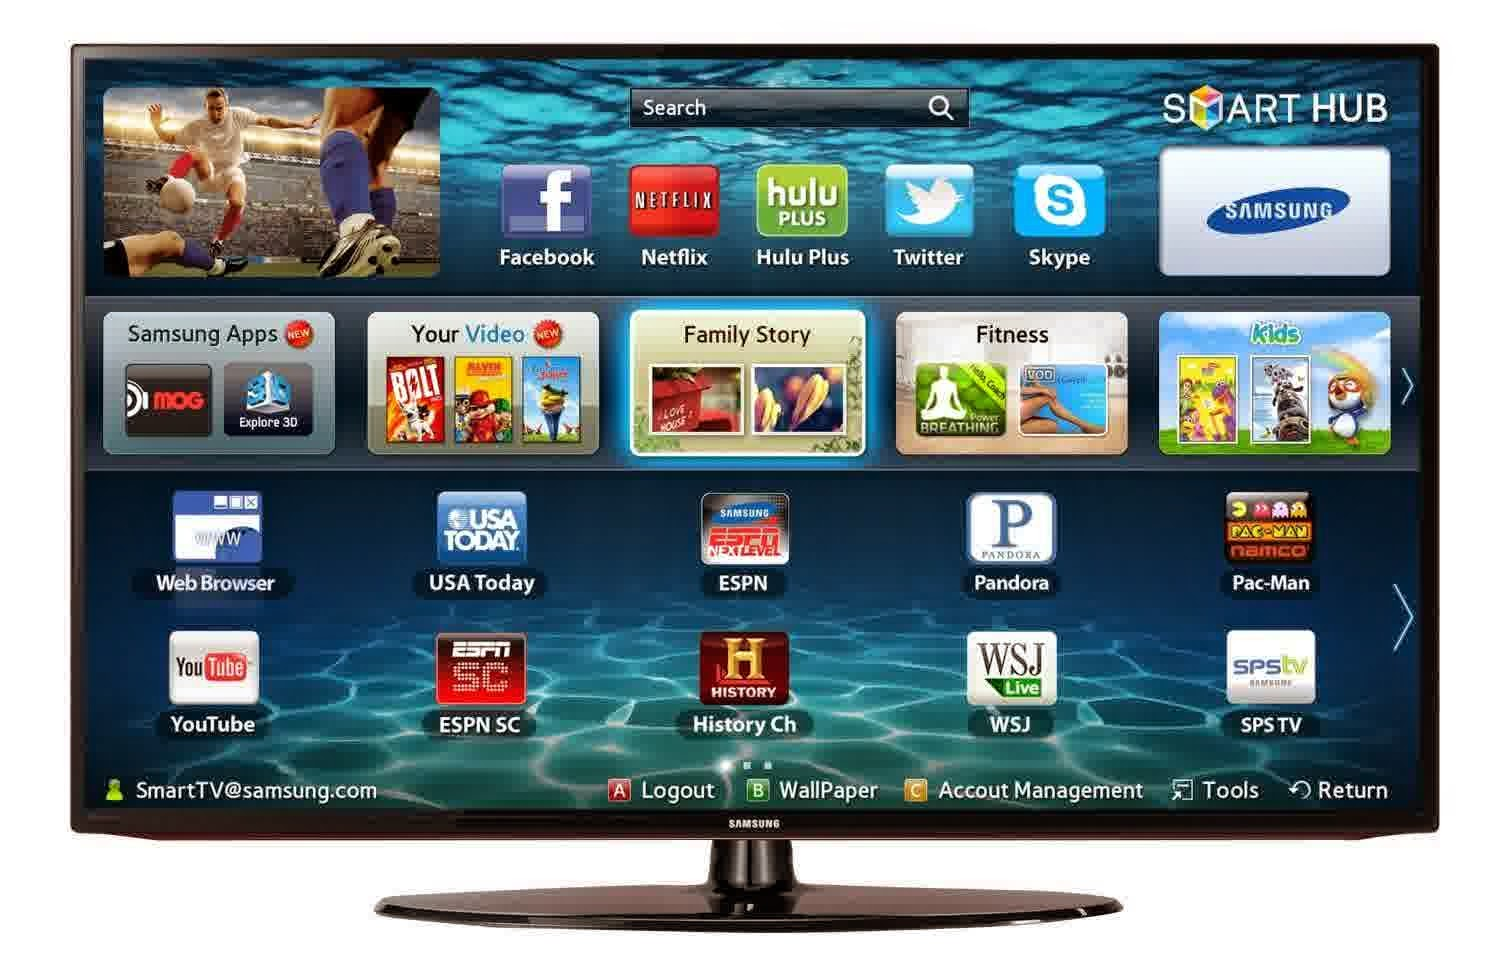 samsung un40eh5300 40 inch 1080p 60hz led hdtv 2013 model. Black Bedroom Furniture Sets. Home Design Ideas